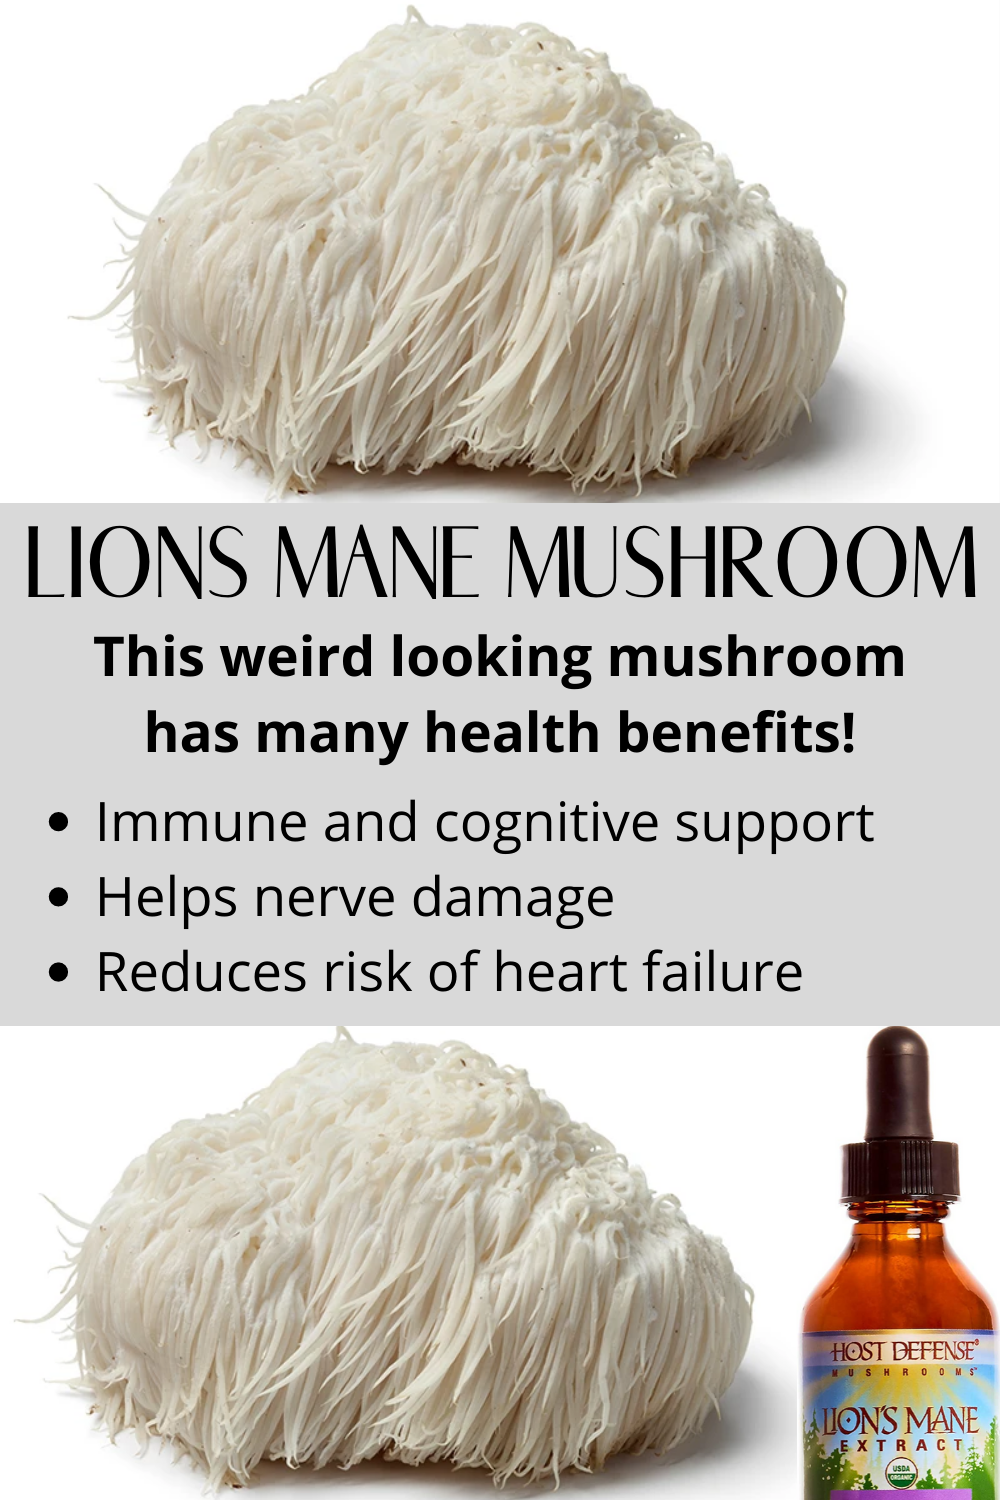 Lion's Mane Mushroom Supplement - The Benefits, Pros, Cons, and Side Effects